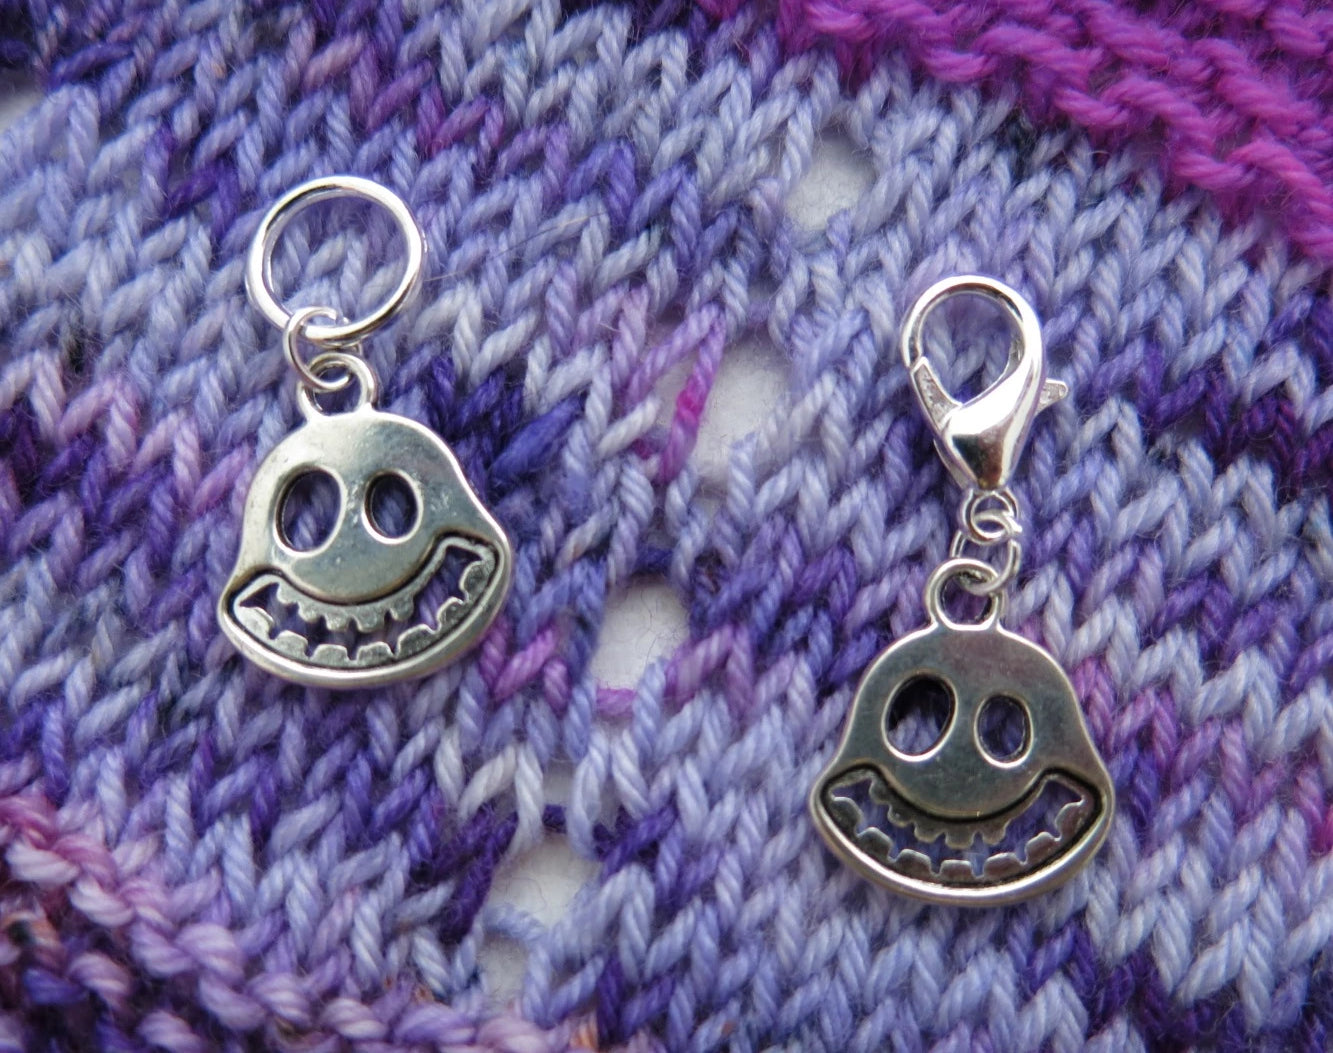 silver coloured smiling ghost face charms on lobster clasps for knitting and crochet